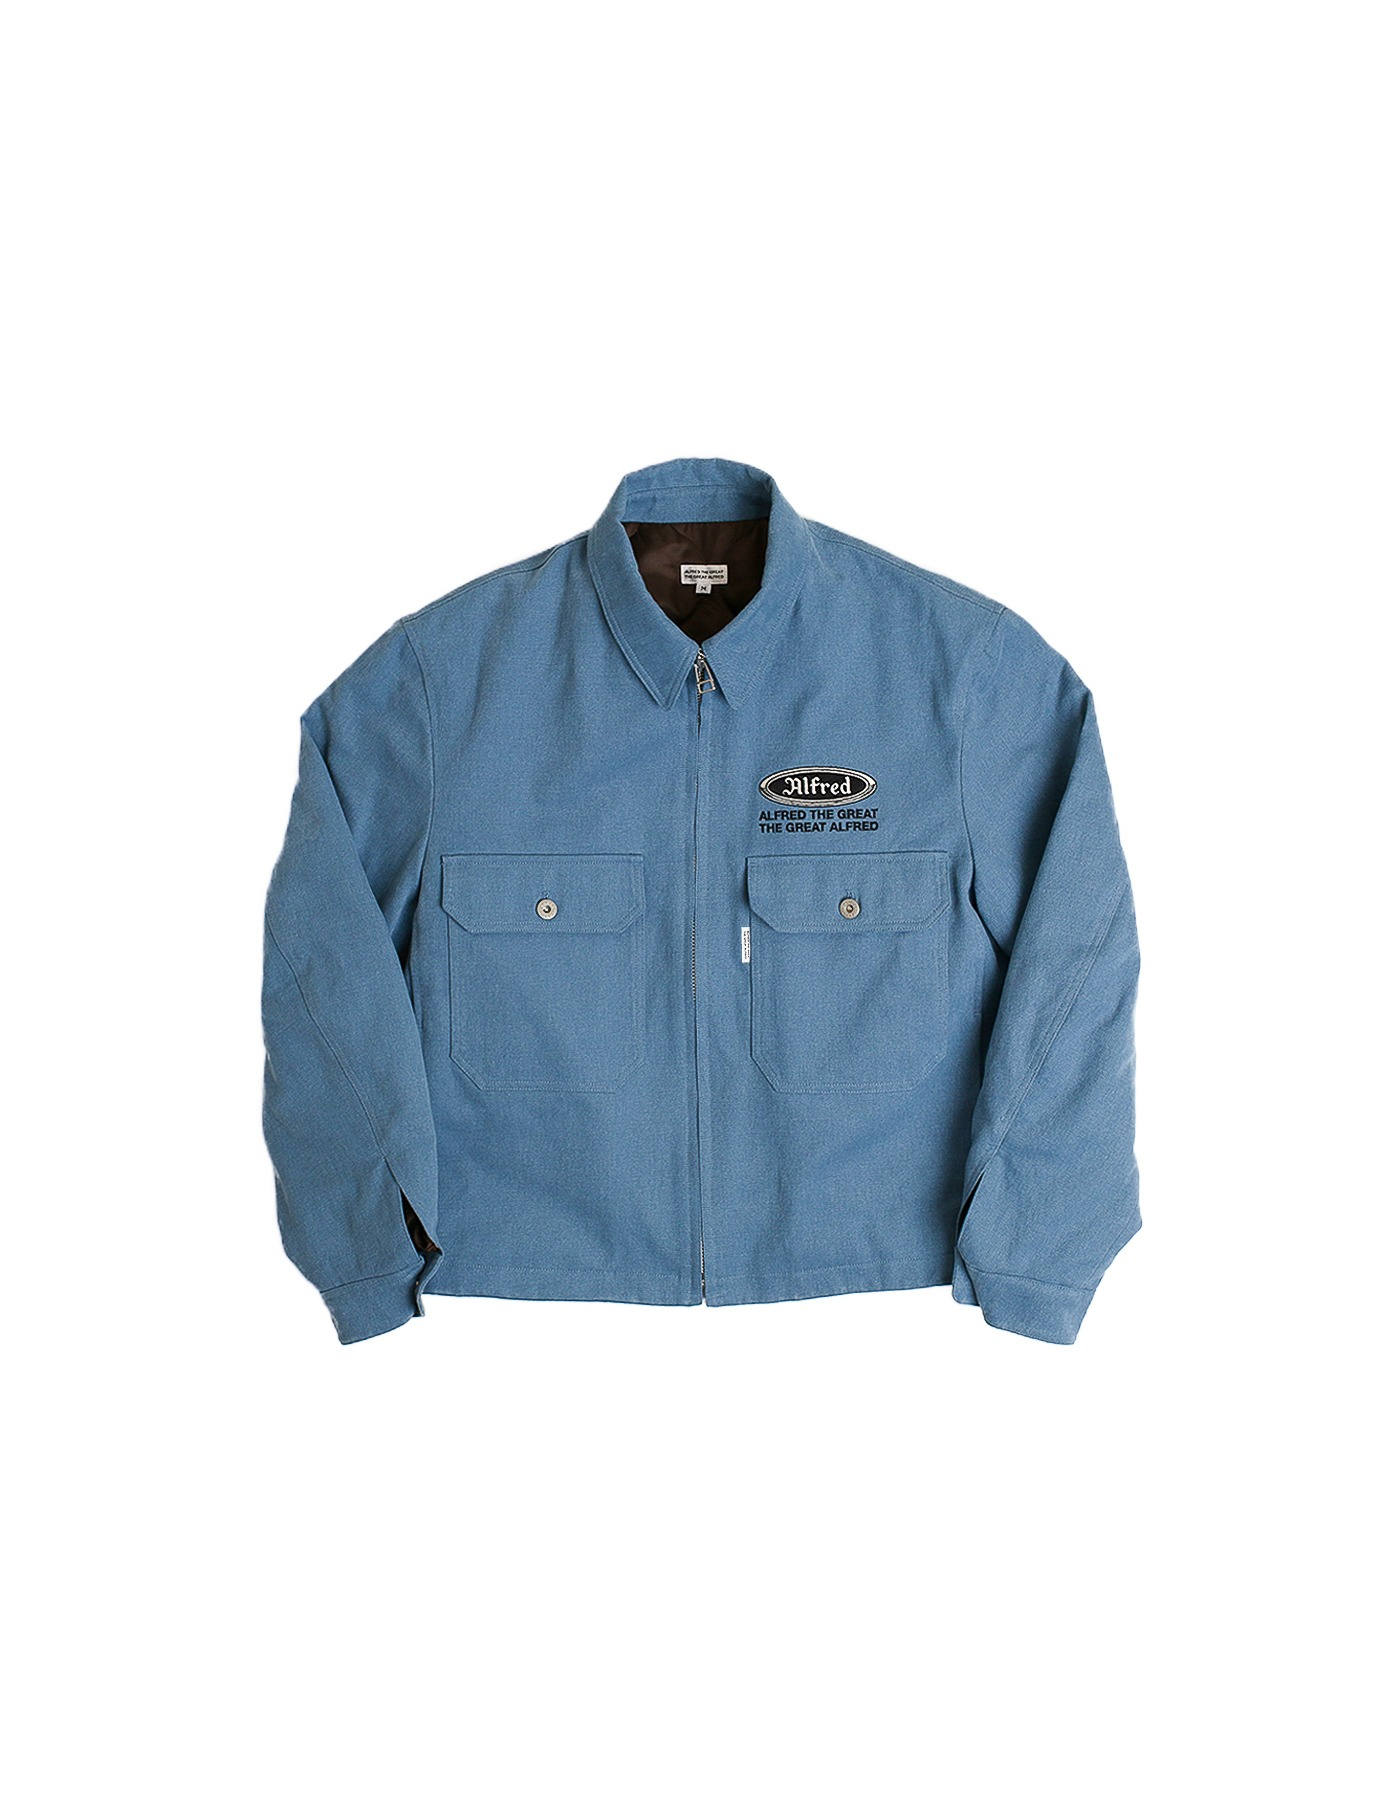 FRED MECHANIC JACKET / BLUE